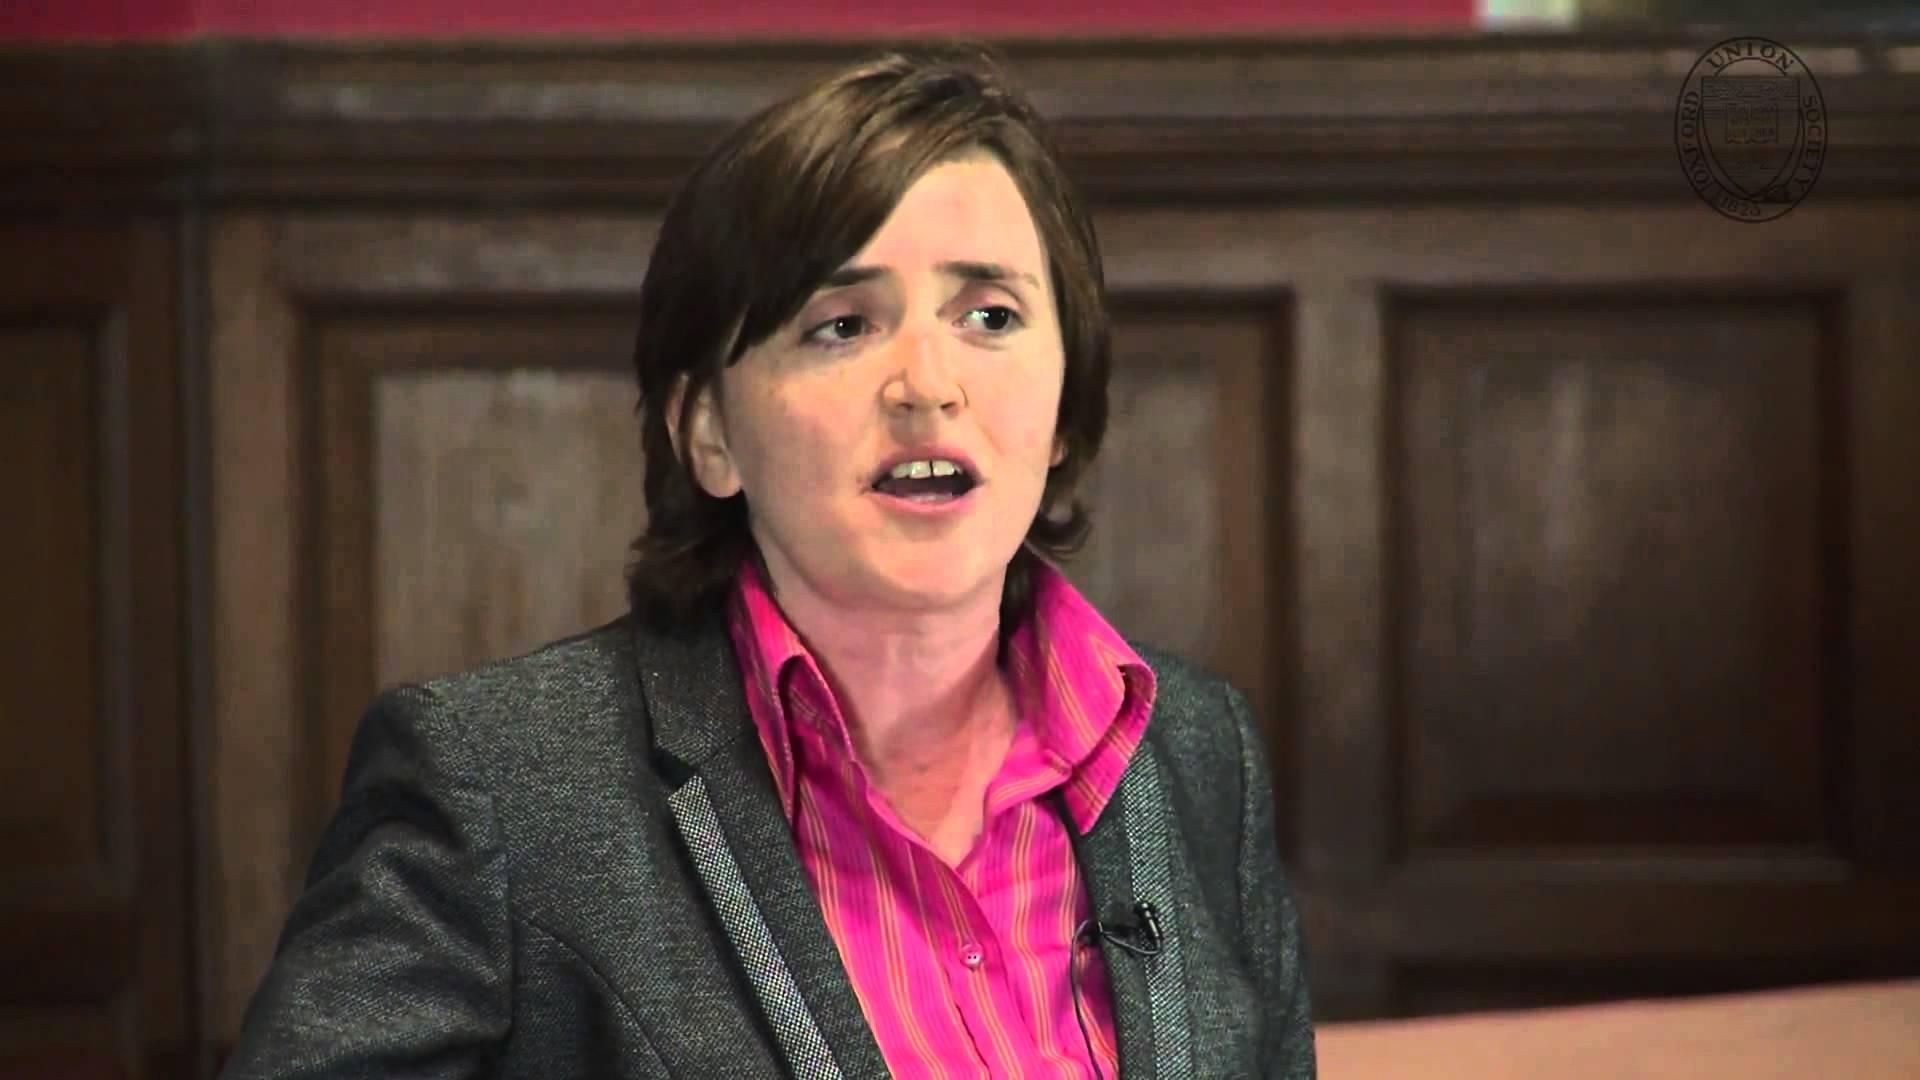 Anne Marie Waters is named as co-founder of Voice